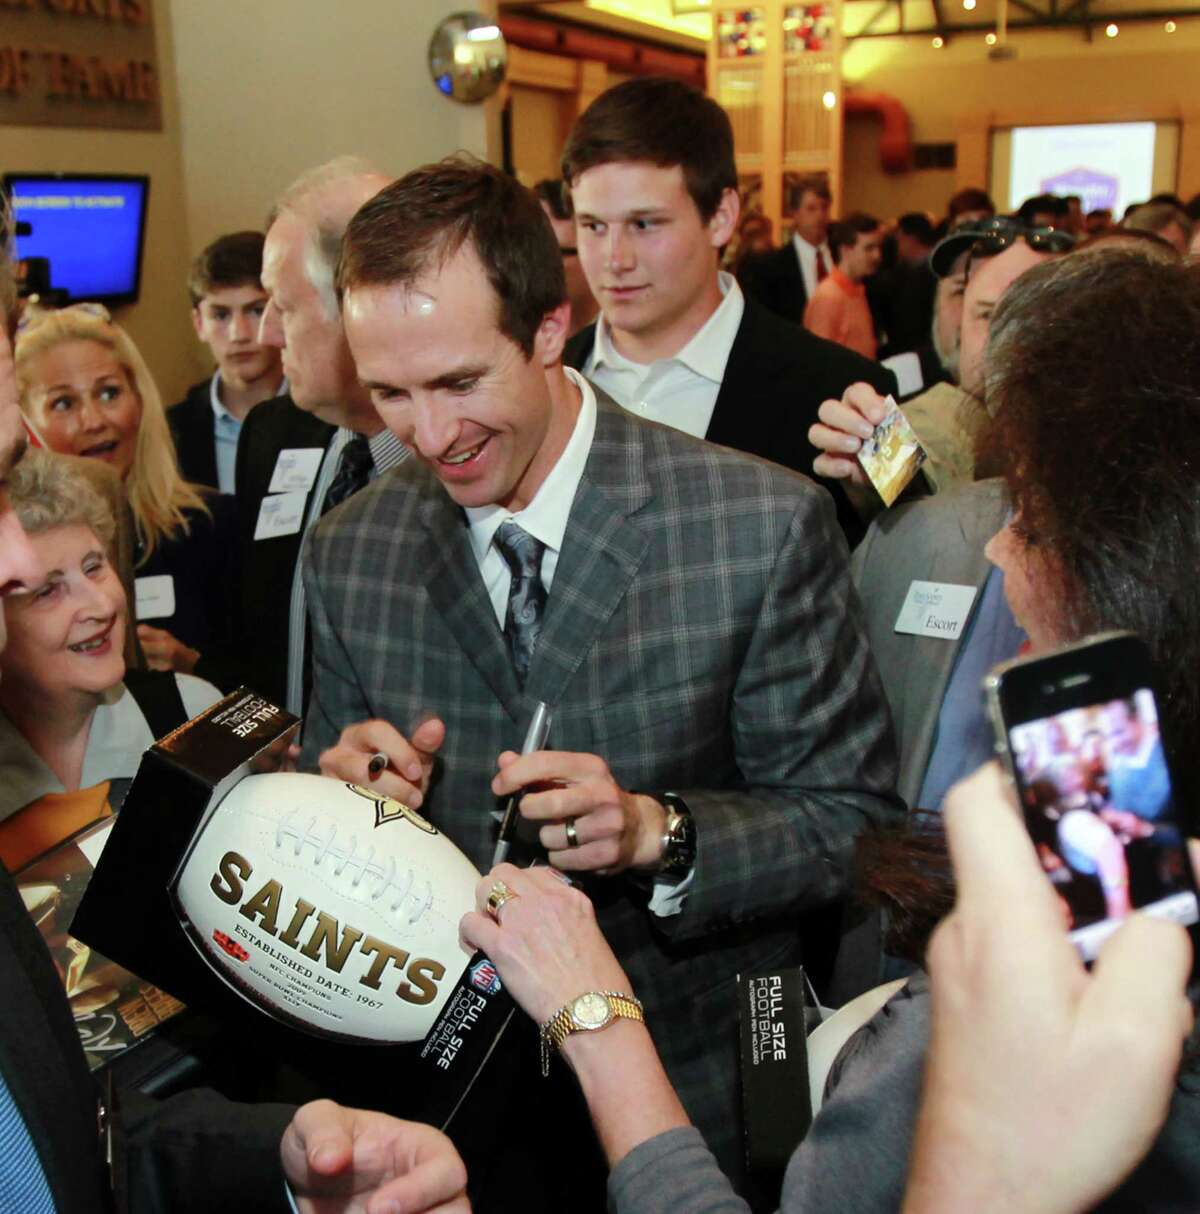 New Orleans Saints NFL football quarterback Drew Brees signs a football at a reception before the induction for the 2013 class of the Texas Sports Hall of Fame, Monday, Feb. 18, 2013, in Waco, Texas.